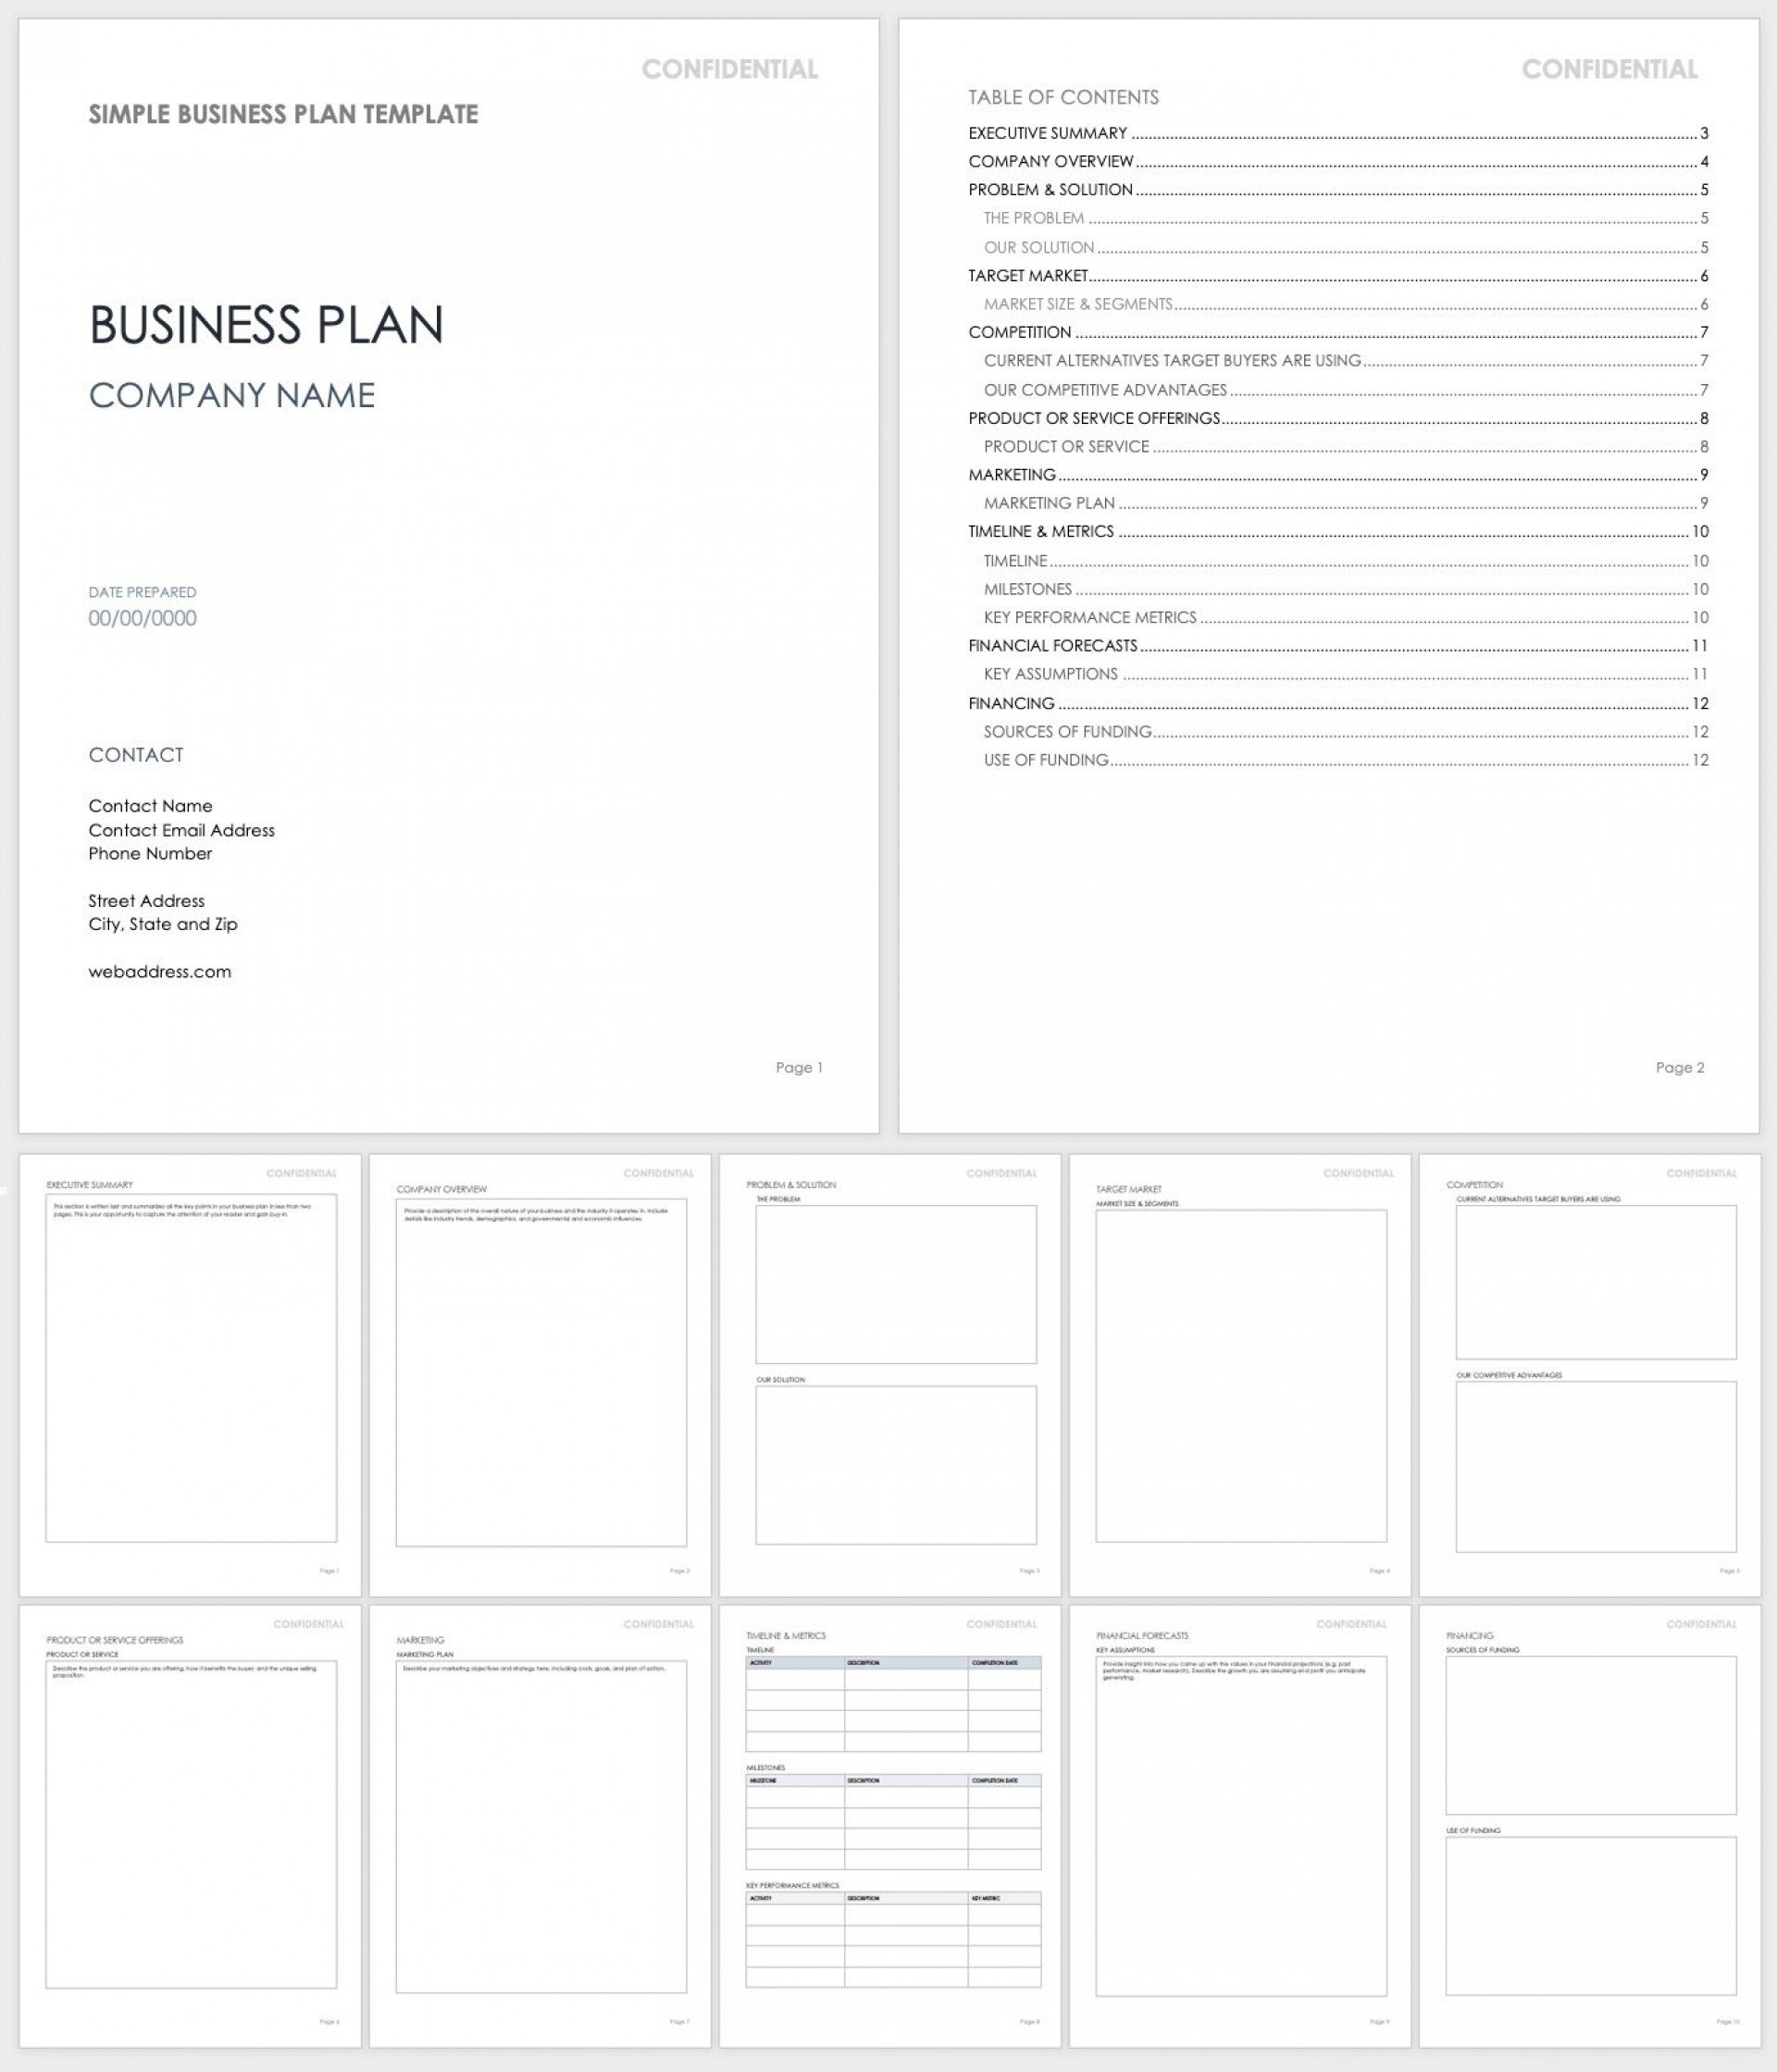 009 Marvelou Busines Plan Word Template High Resolution  Templates Doc Free Download Sale1920